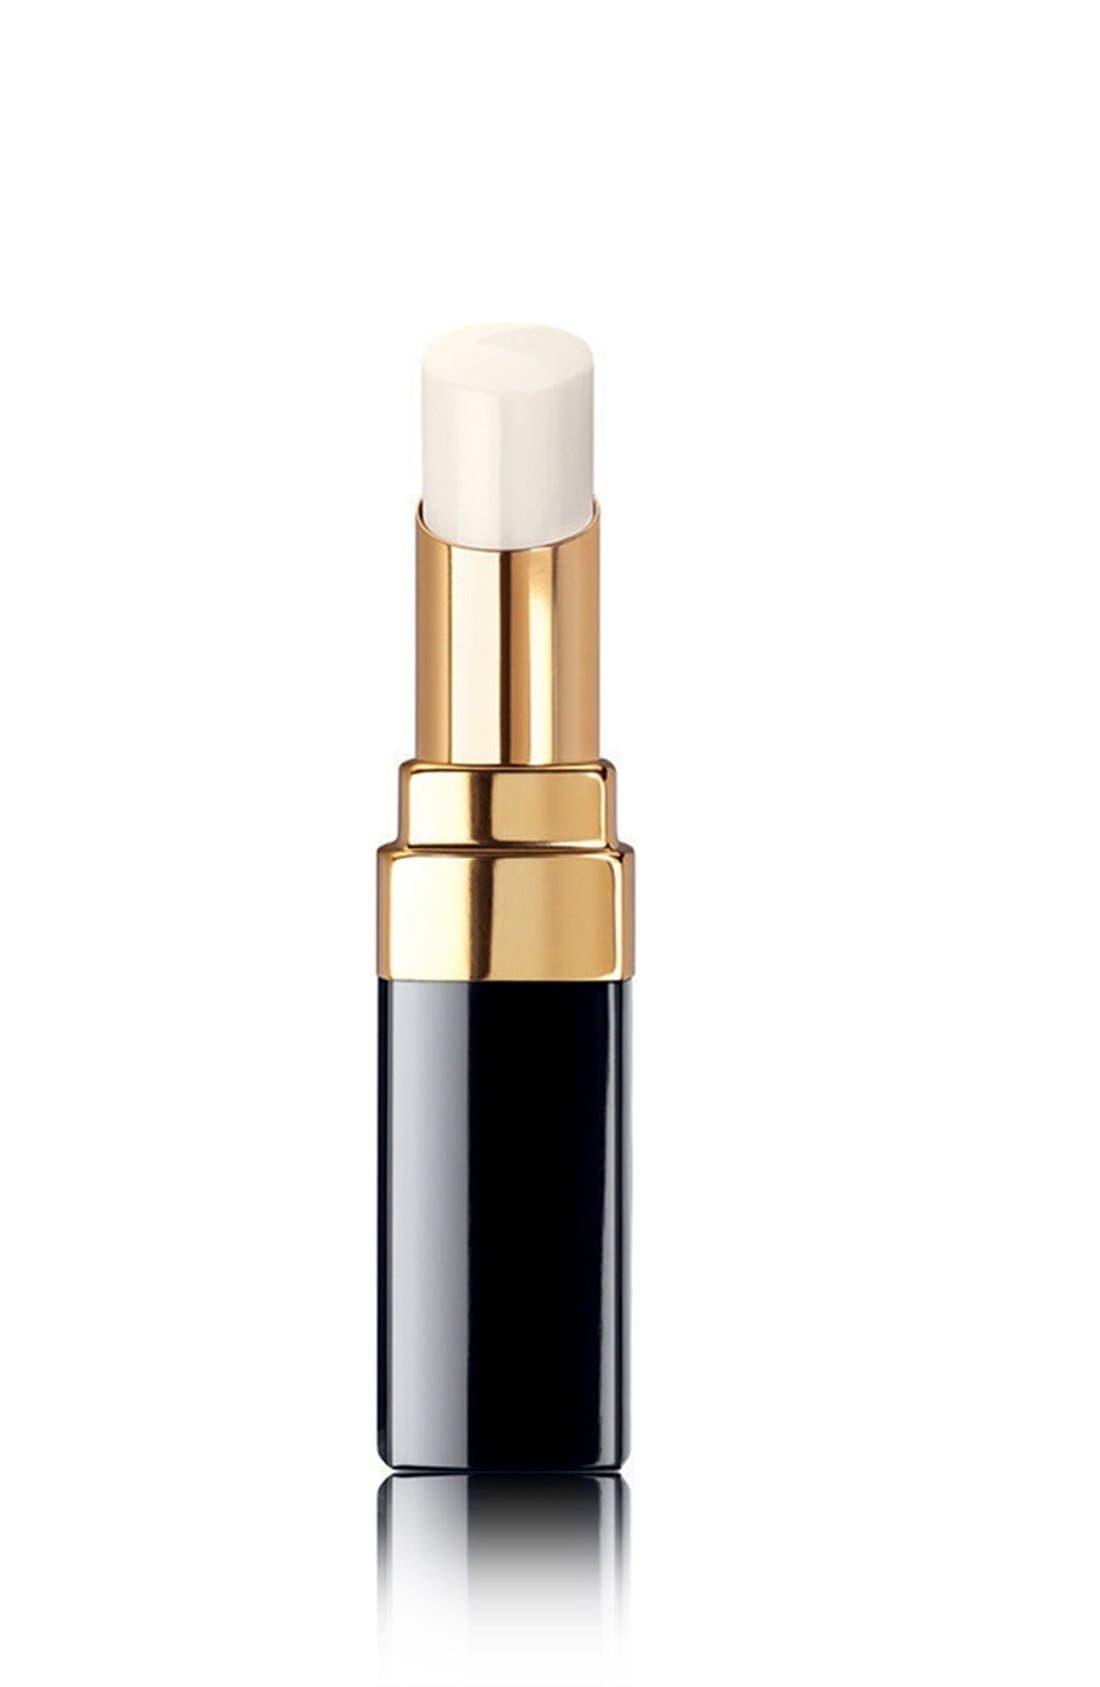 CHANEL ROUGE COCO BAUME  Hydrating Conditioning Lip Balm | Nordstrom